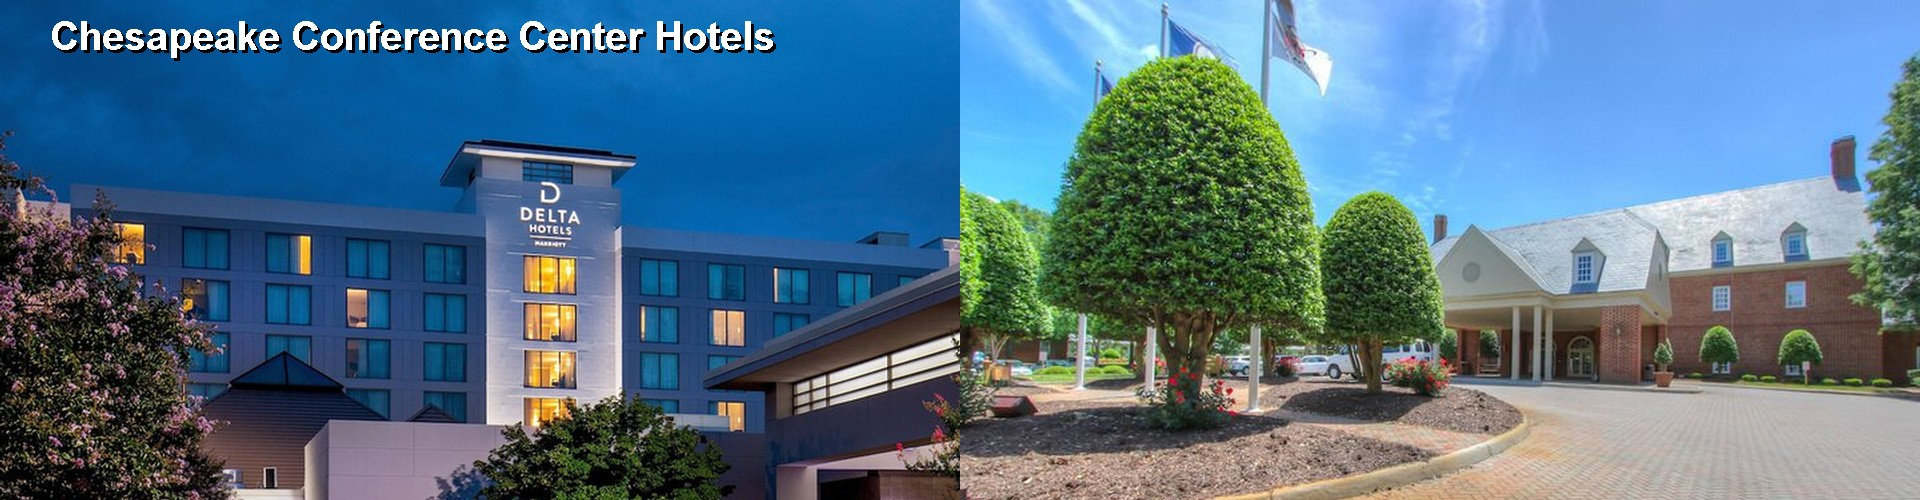 Hotels Near City Center Newport News Va